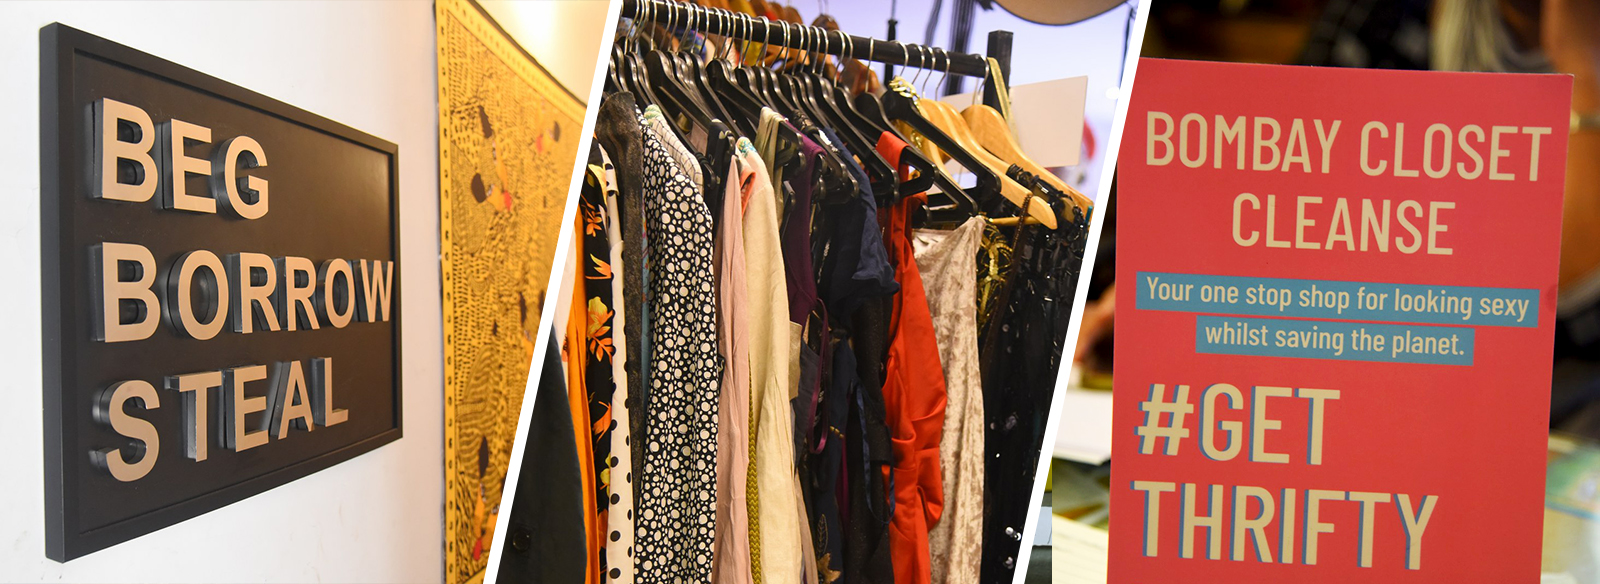 Thrifty Weekends with Seams For Dreams and Bombay Closet Cleanse - Seams For Dreams